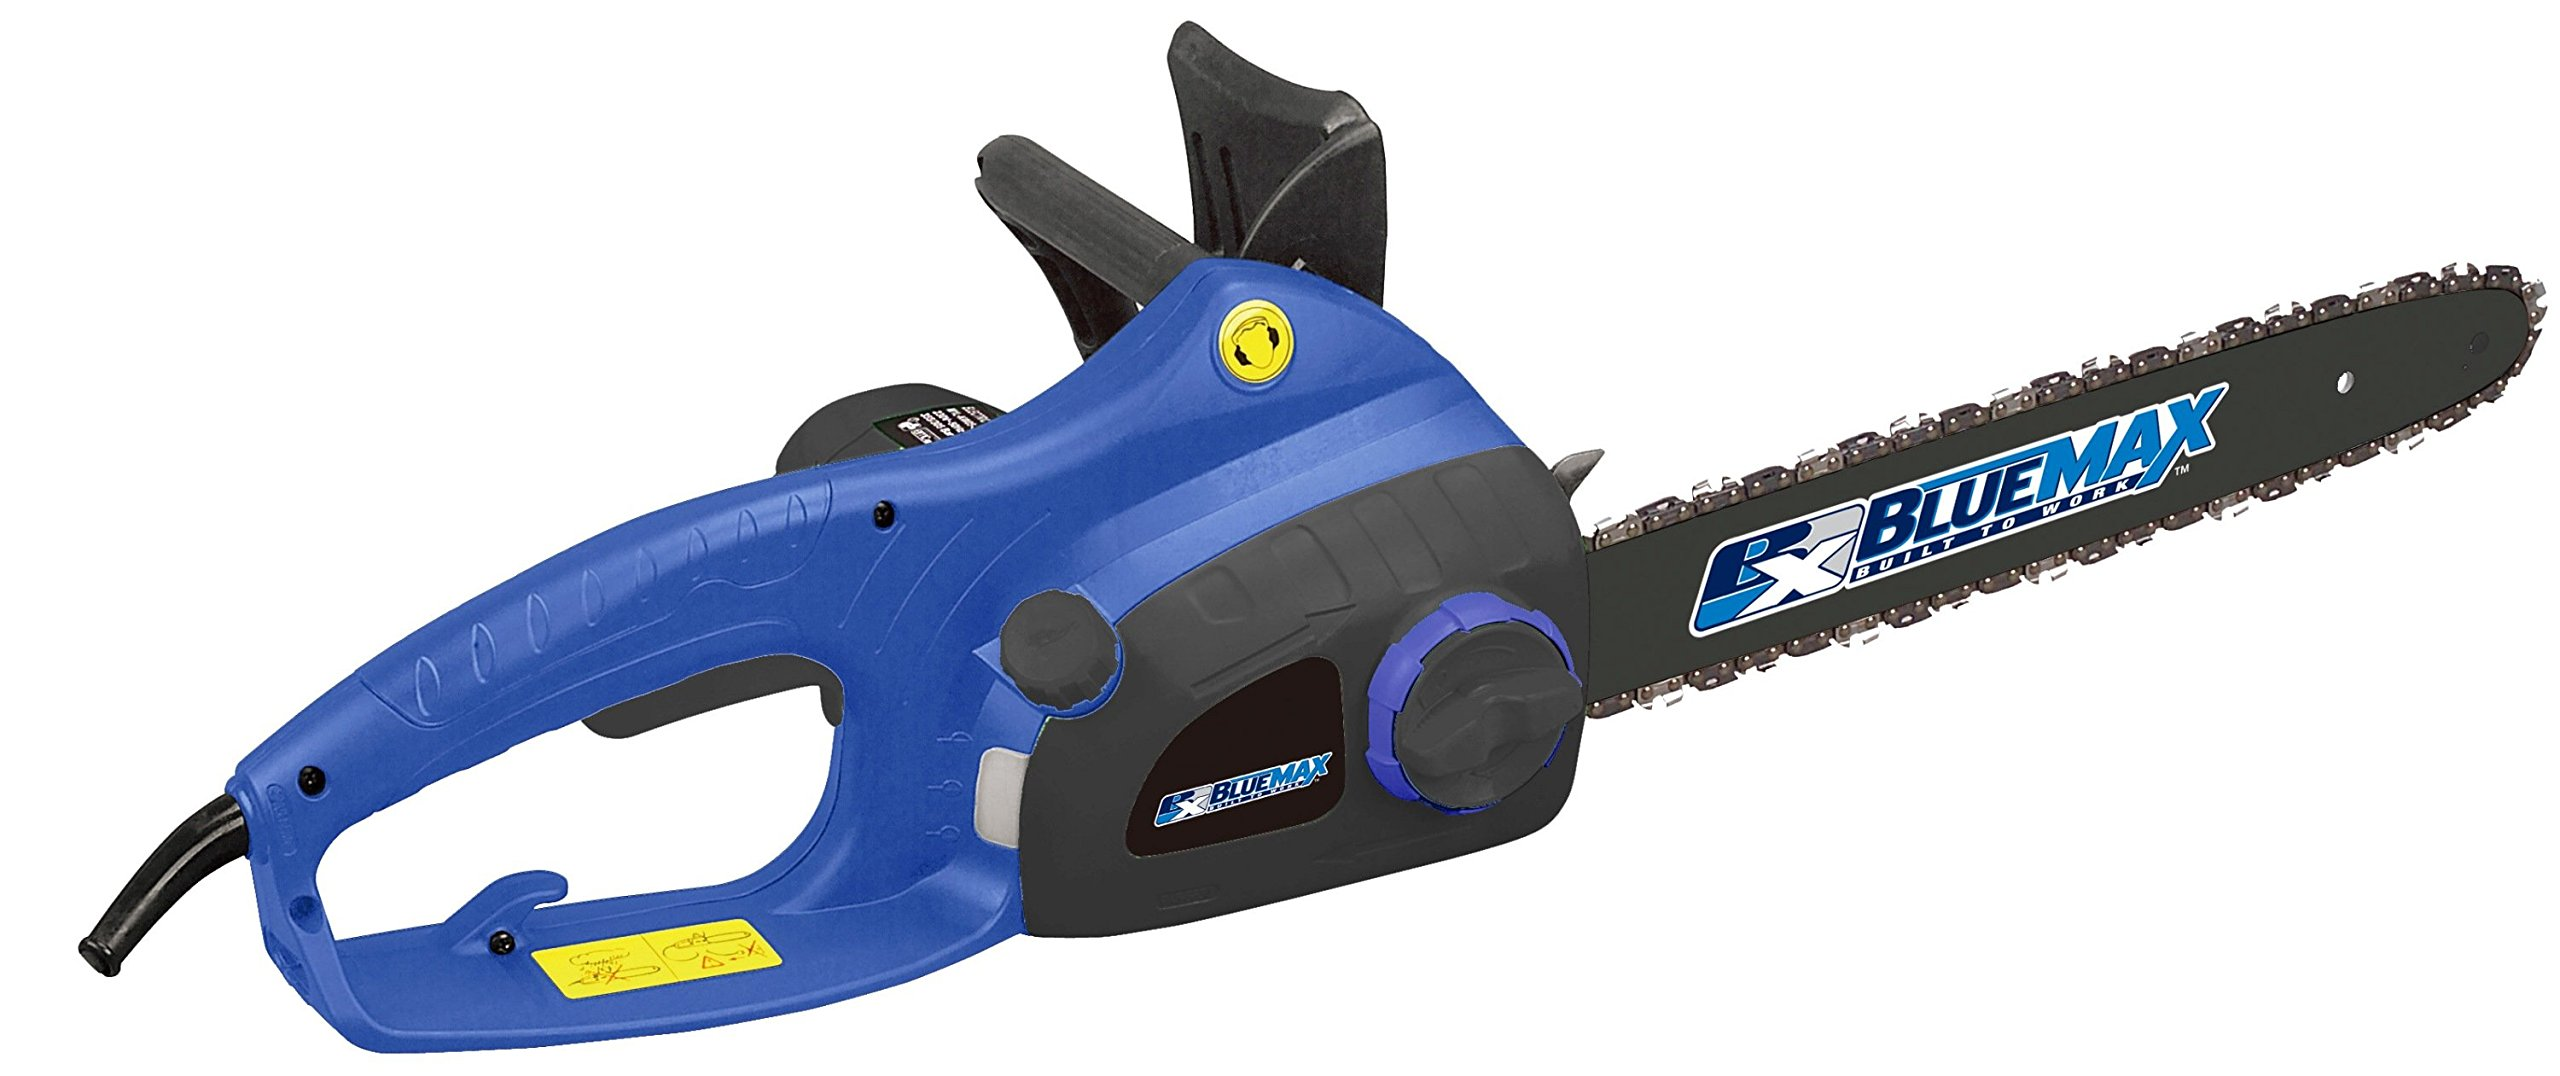 Blue Max 7954 16-Inch Electric Chainsaw with Twist Chain Tensioner